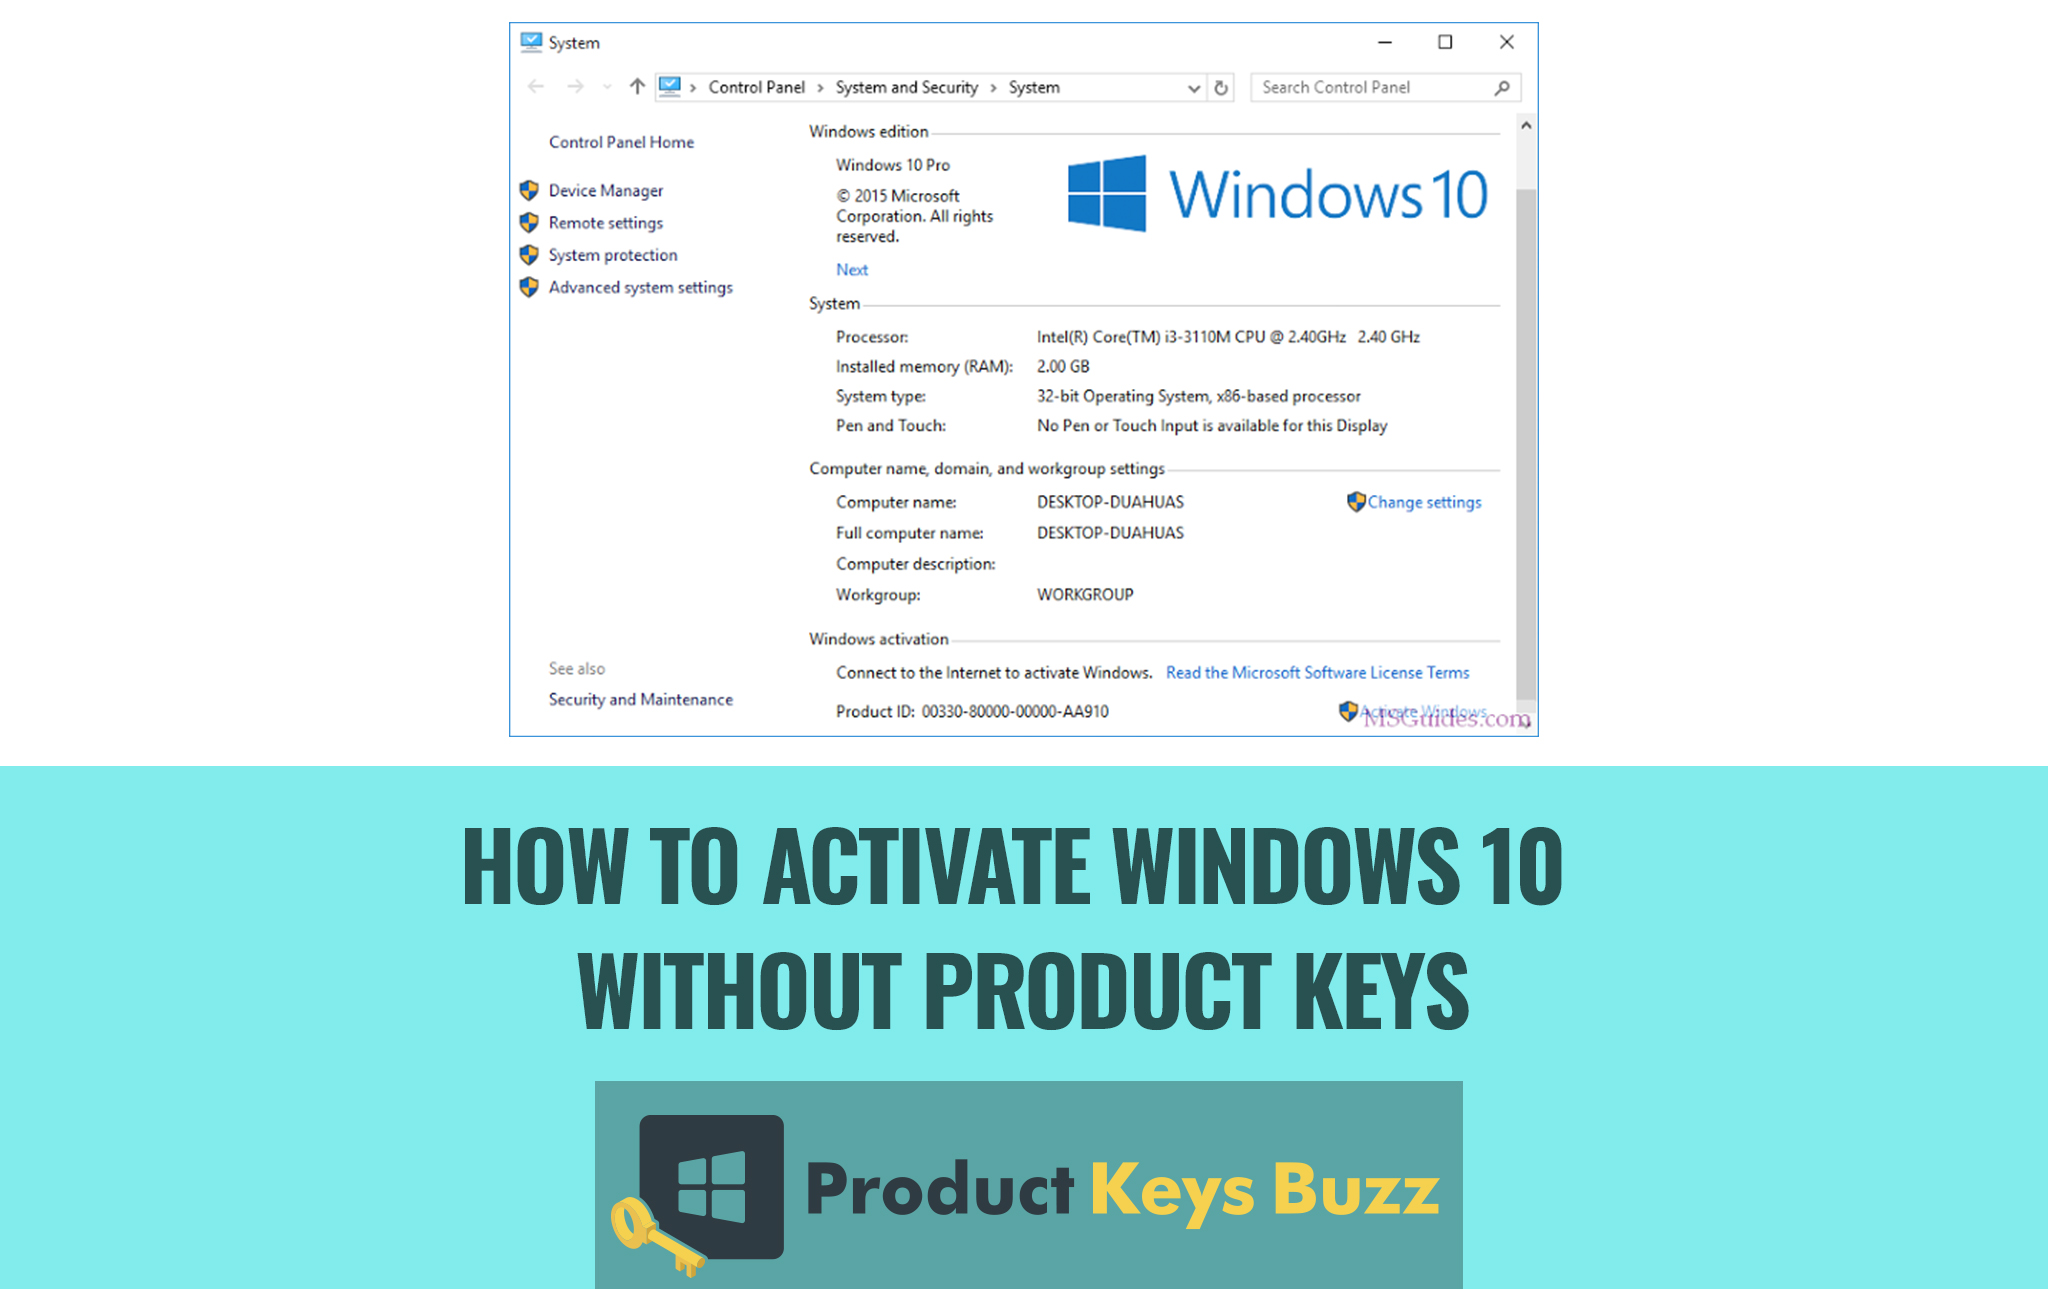 How to Activate Windows 10 Without Product Keys